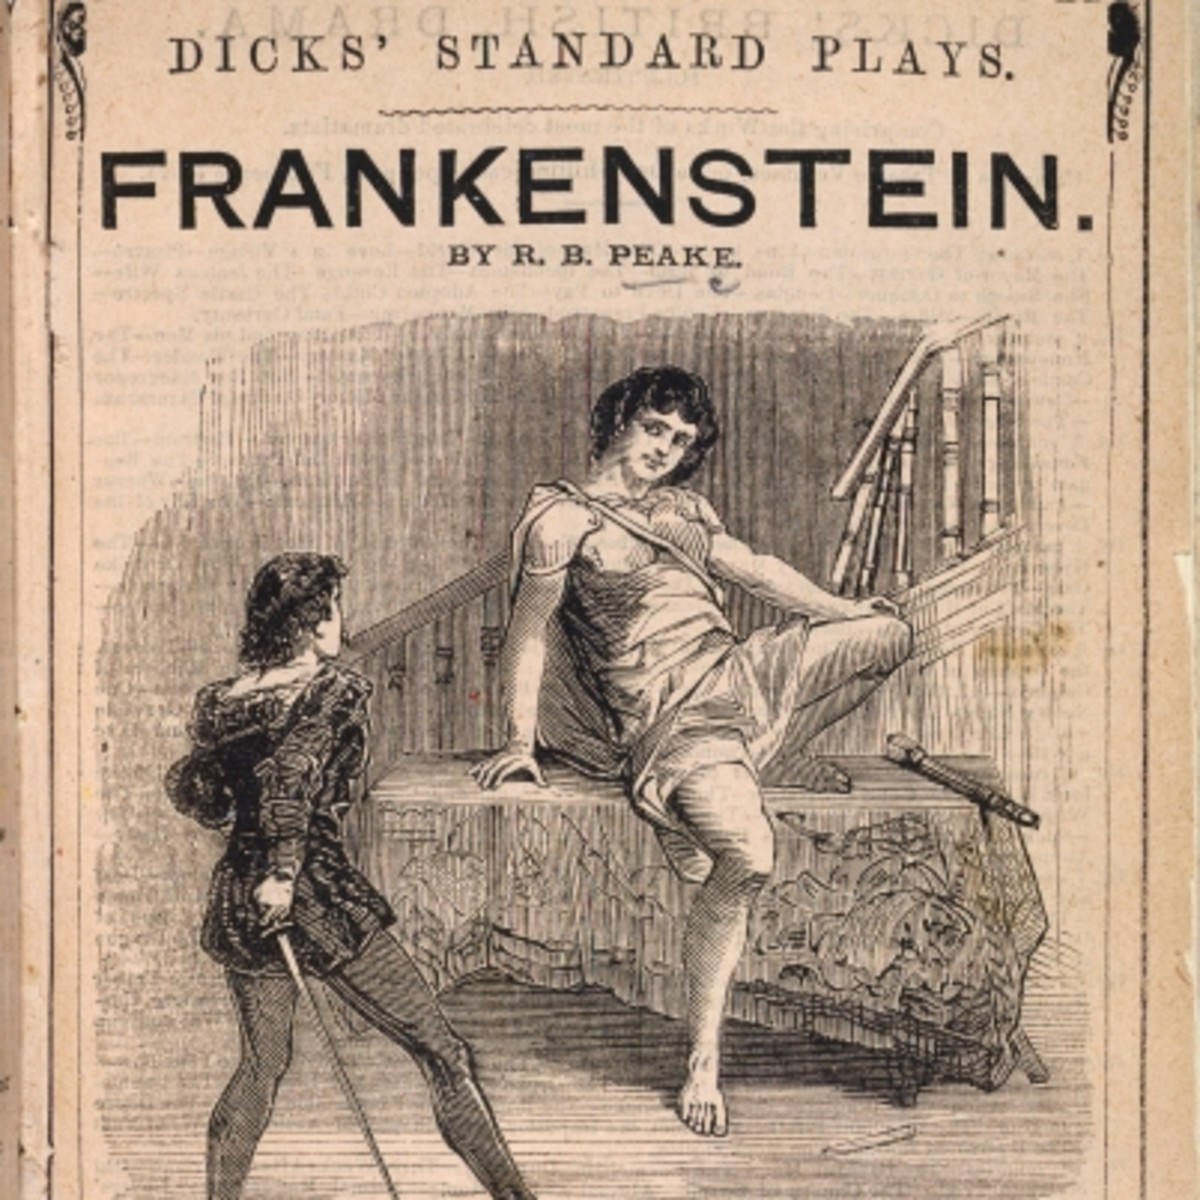 An advertisement for the play 'Presumption; or The Fate of Frankenstein' by Richard Brinsley Peake, 1823. (Getty)